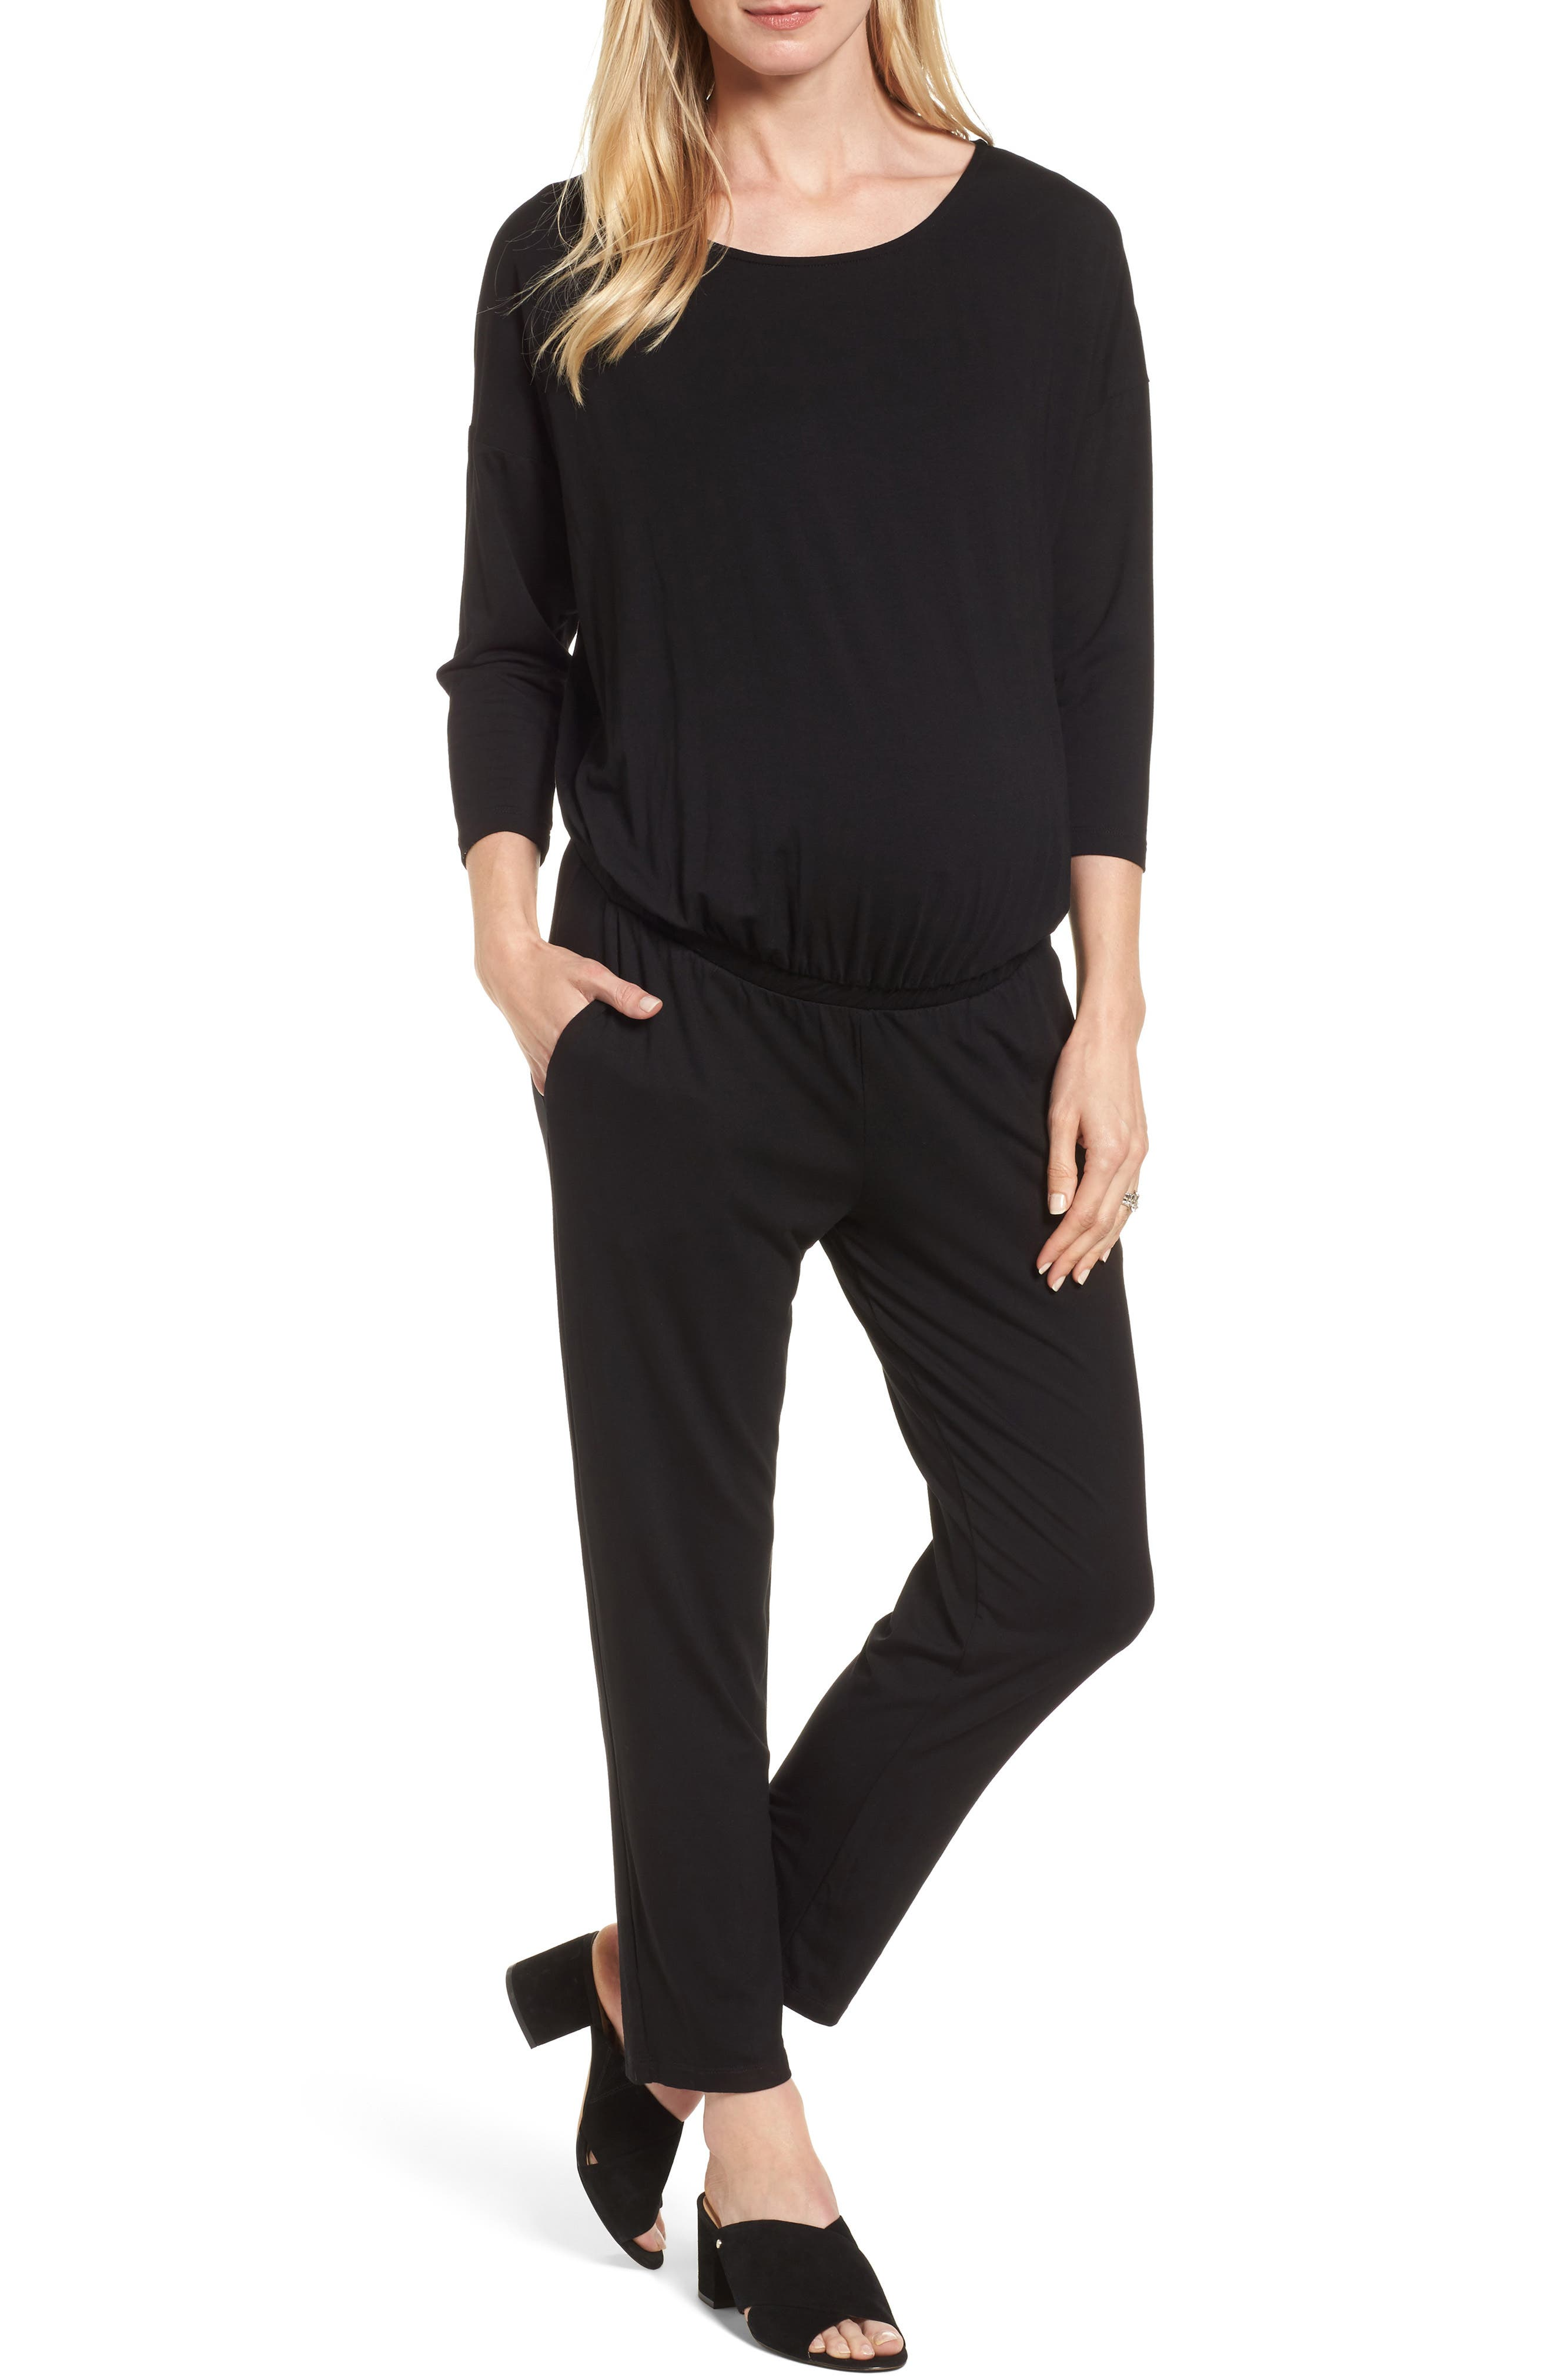 Chloe Maternity Jumpsuit,                             Main thumbnail 1, color,                             Caviar Black